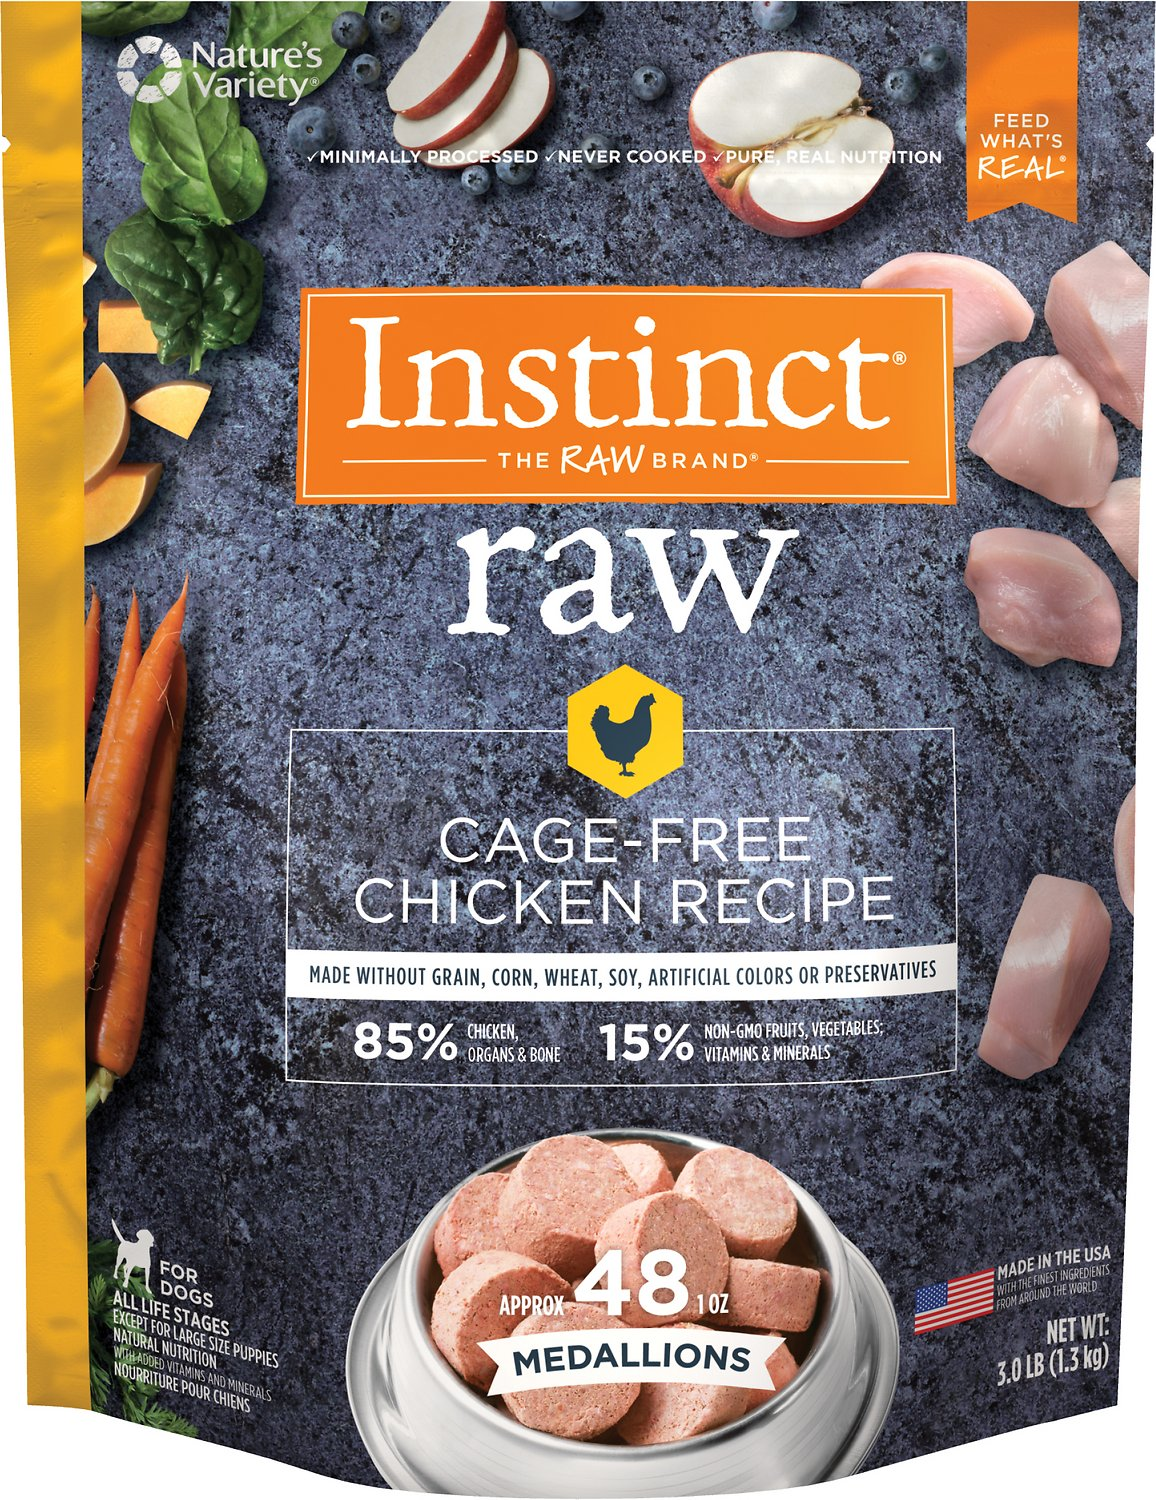 Instinct by Nature's Variety Raw Medallions Grain-Free Cage-Free Chicken Recipe Frozen Dog Food, 3-lb